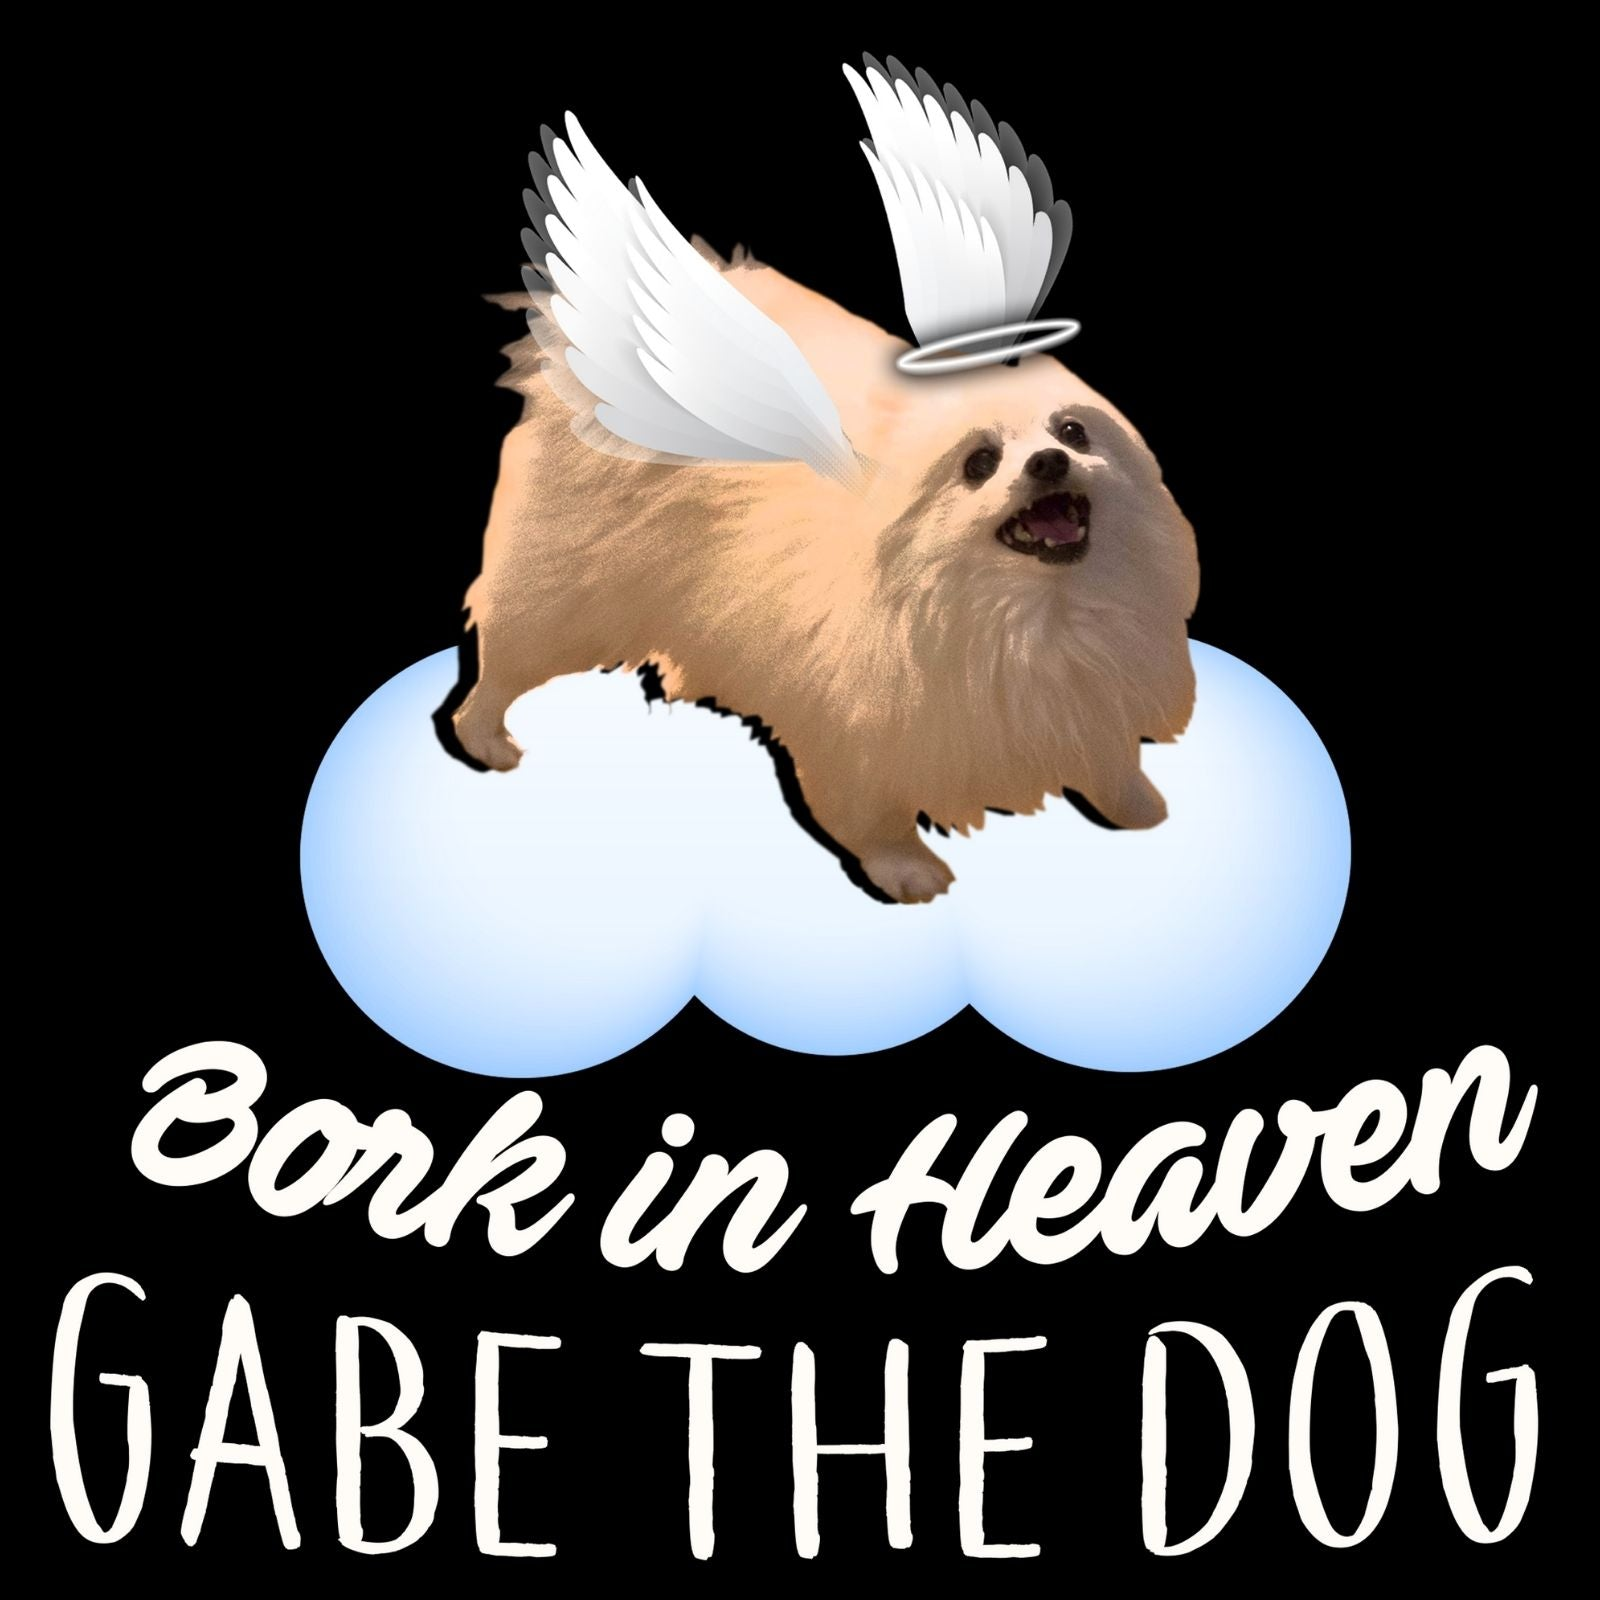 Bork In Heaven Gabe The Dog - Bastard Graphics